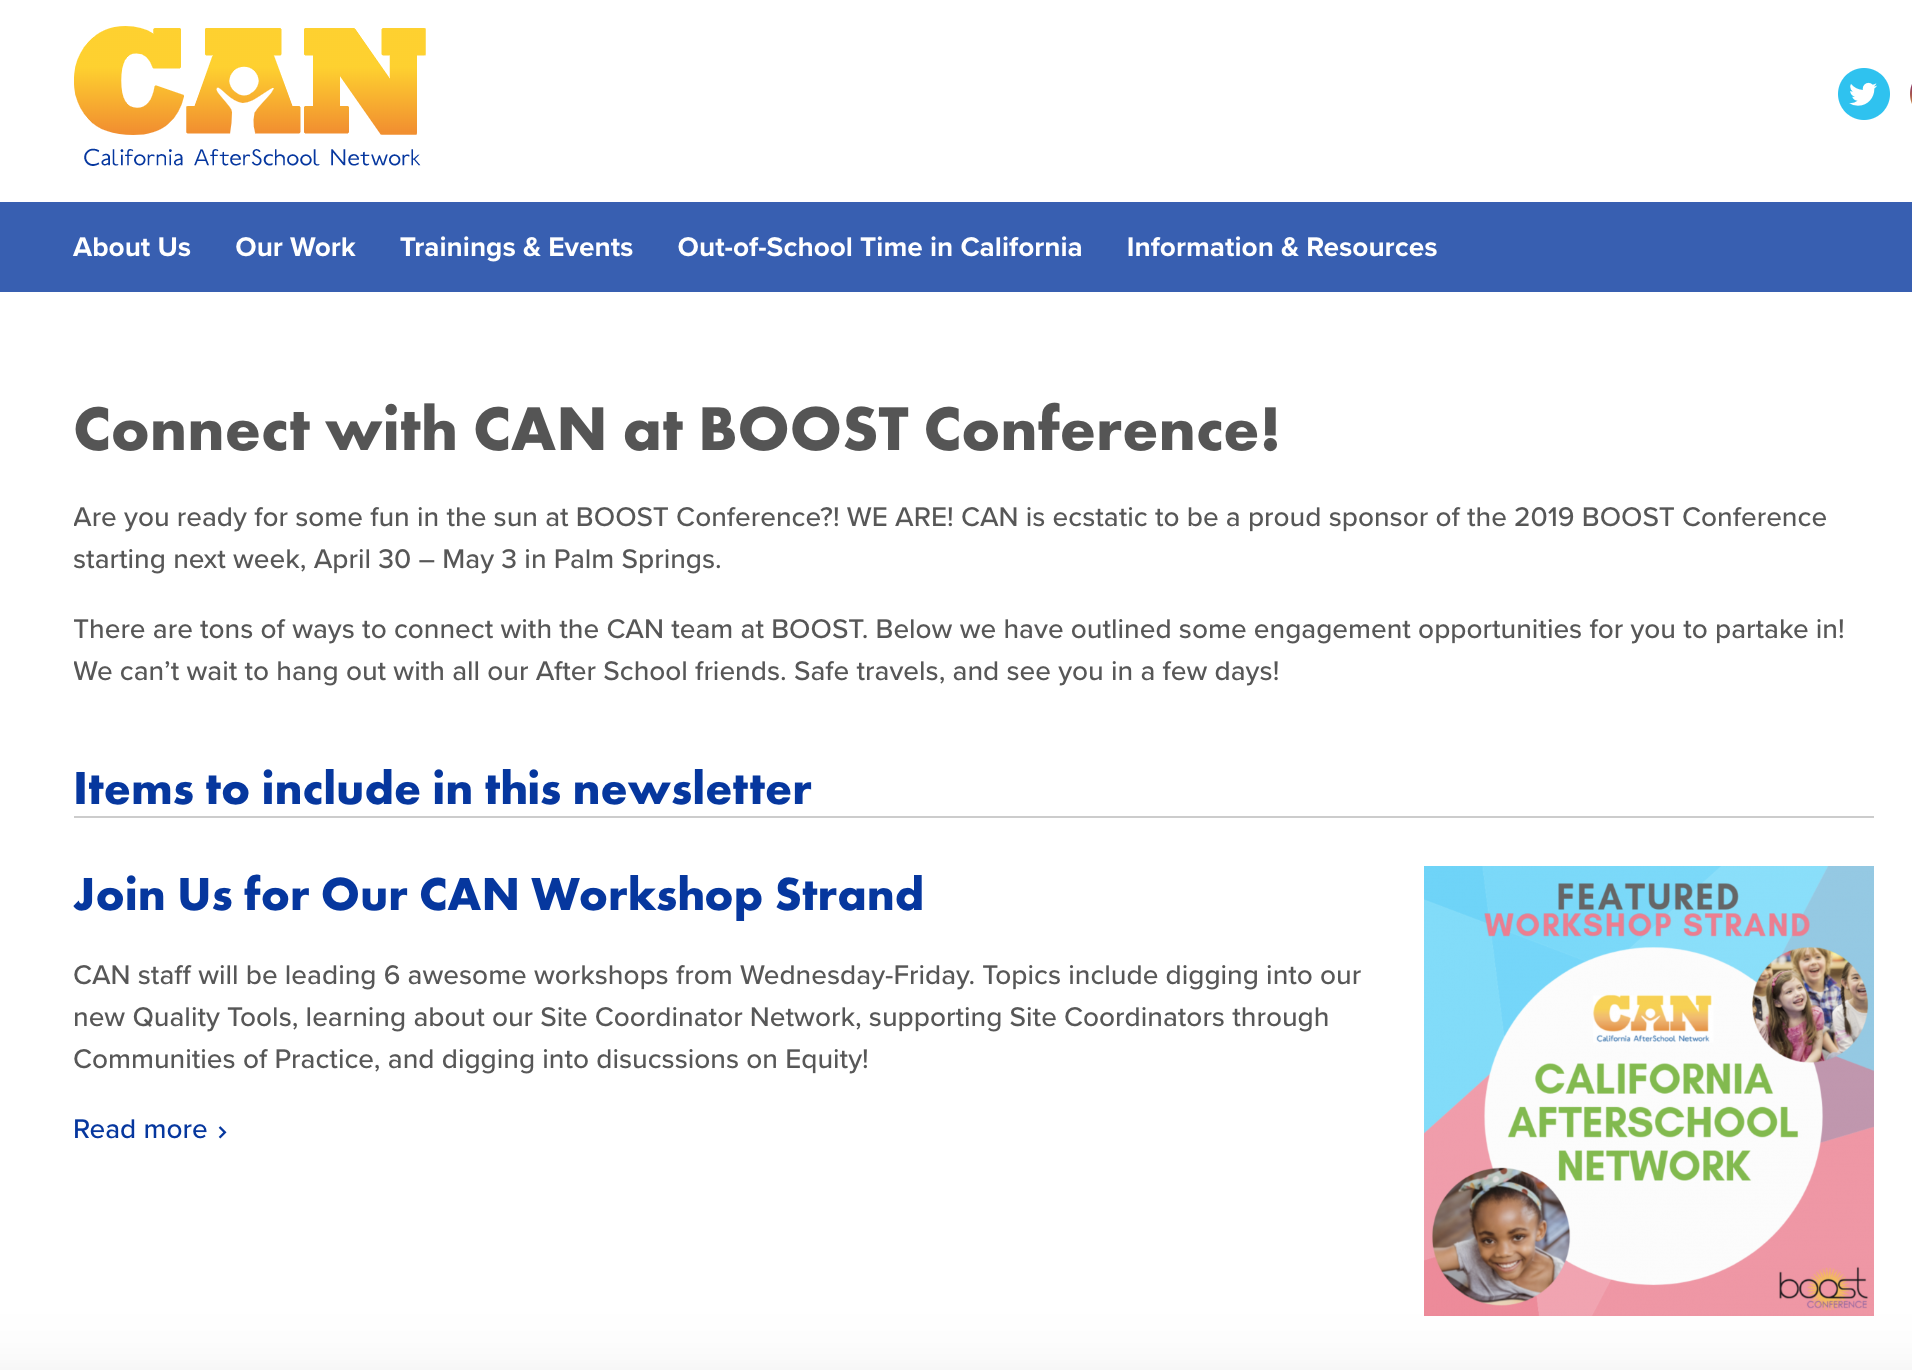 CAN at the 2019 BOOST Conference